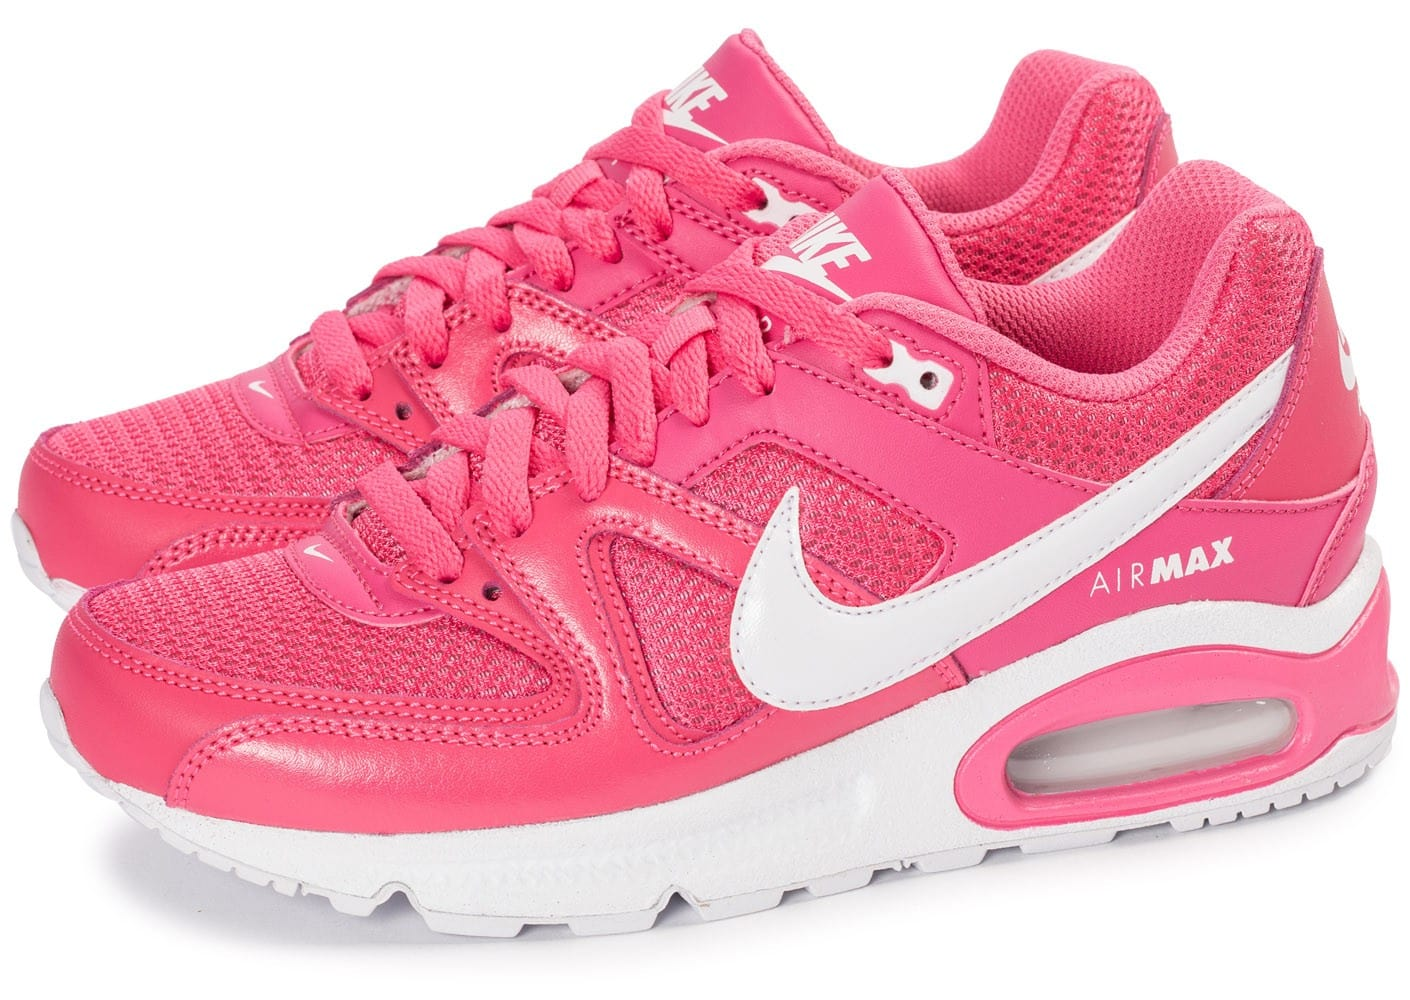 Command Chaussures Chaussures Nike rose Junior Air Max dxCoeB